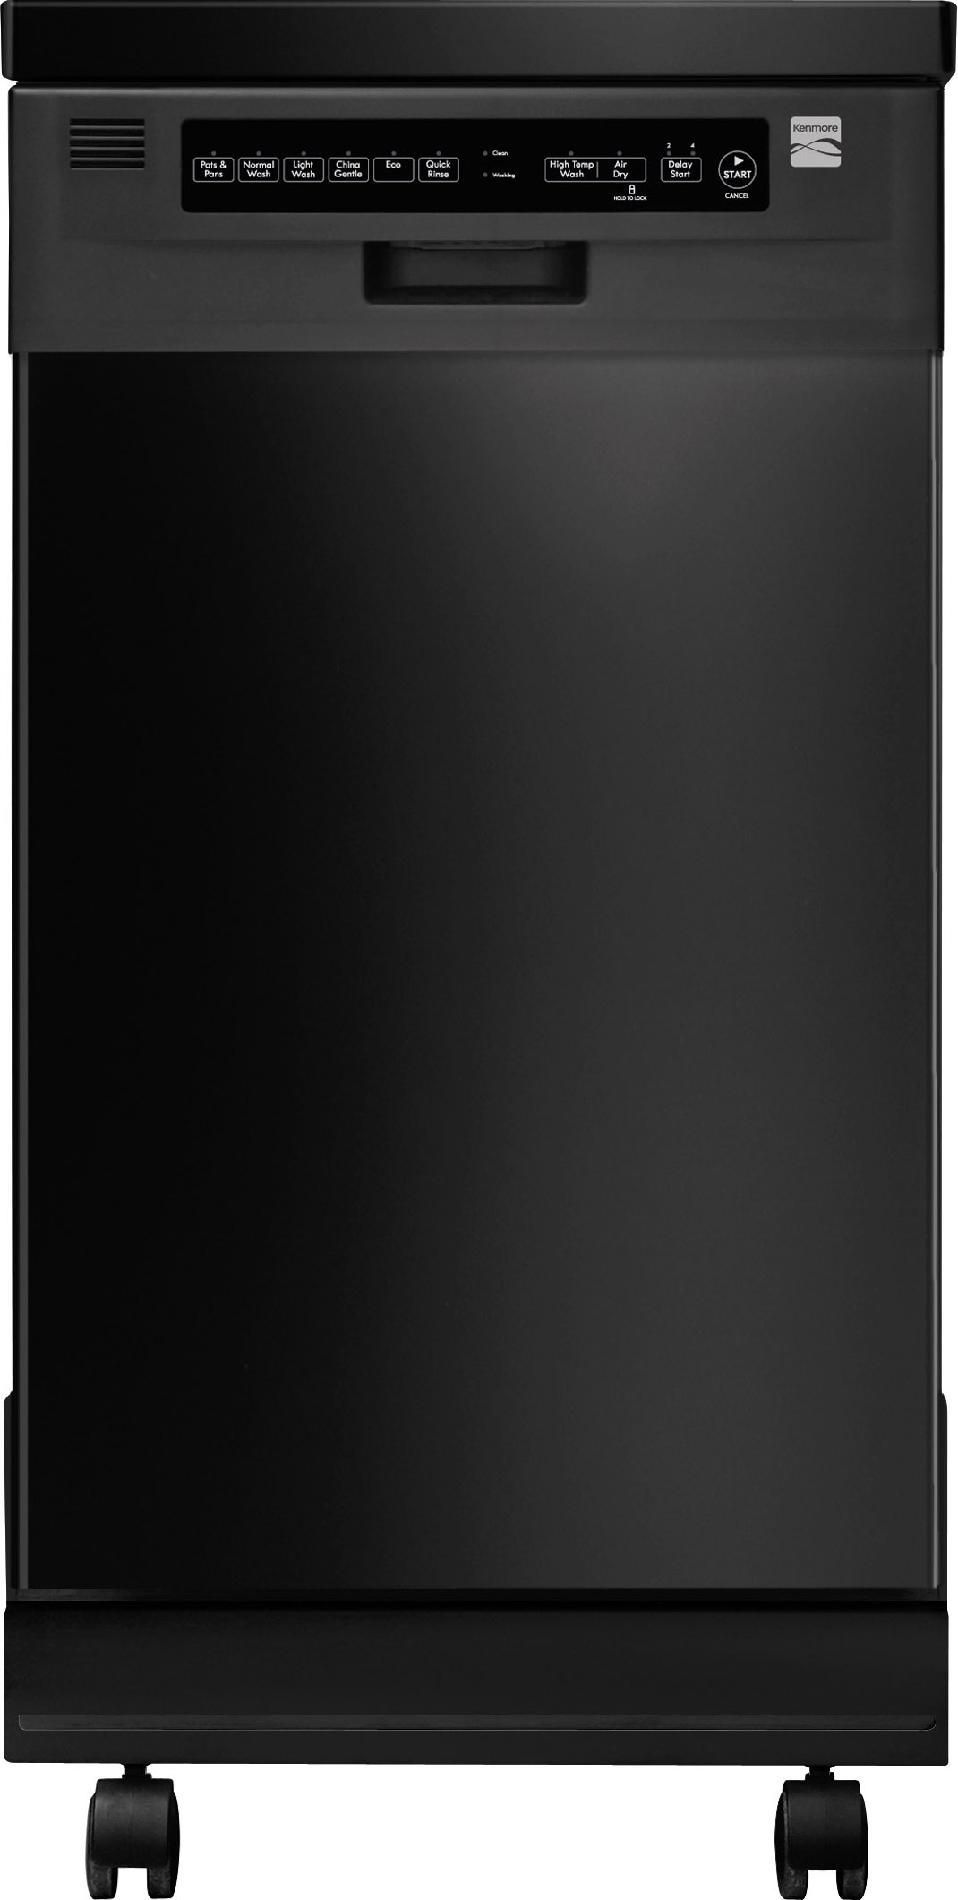 Kenmore Dishwasher Reviews >> Kenmore 14659 18 Portable Dishwasher Black In 2019